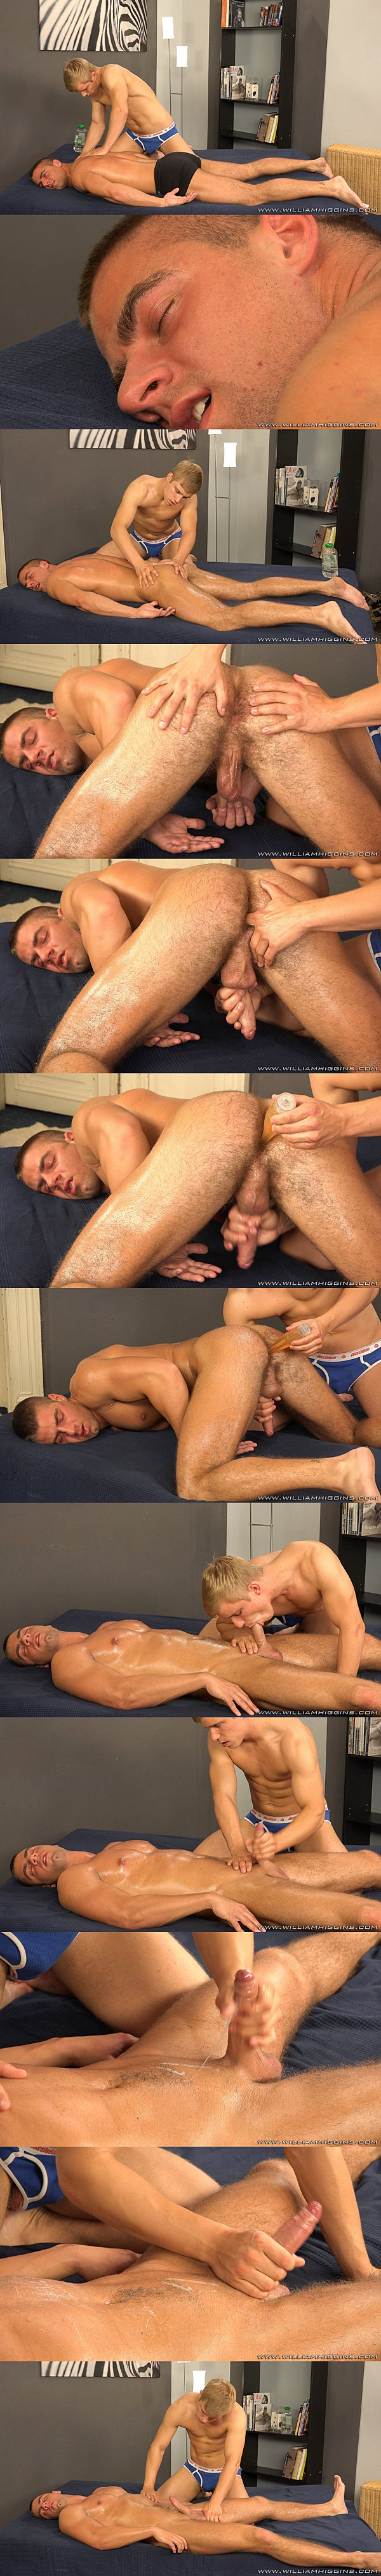 Ivan Mraz fingers and dilfo-fucks Arny Donan's tight virgin hole before he strokes the cum out of Arny at Williamhiggins 02